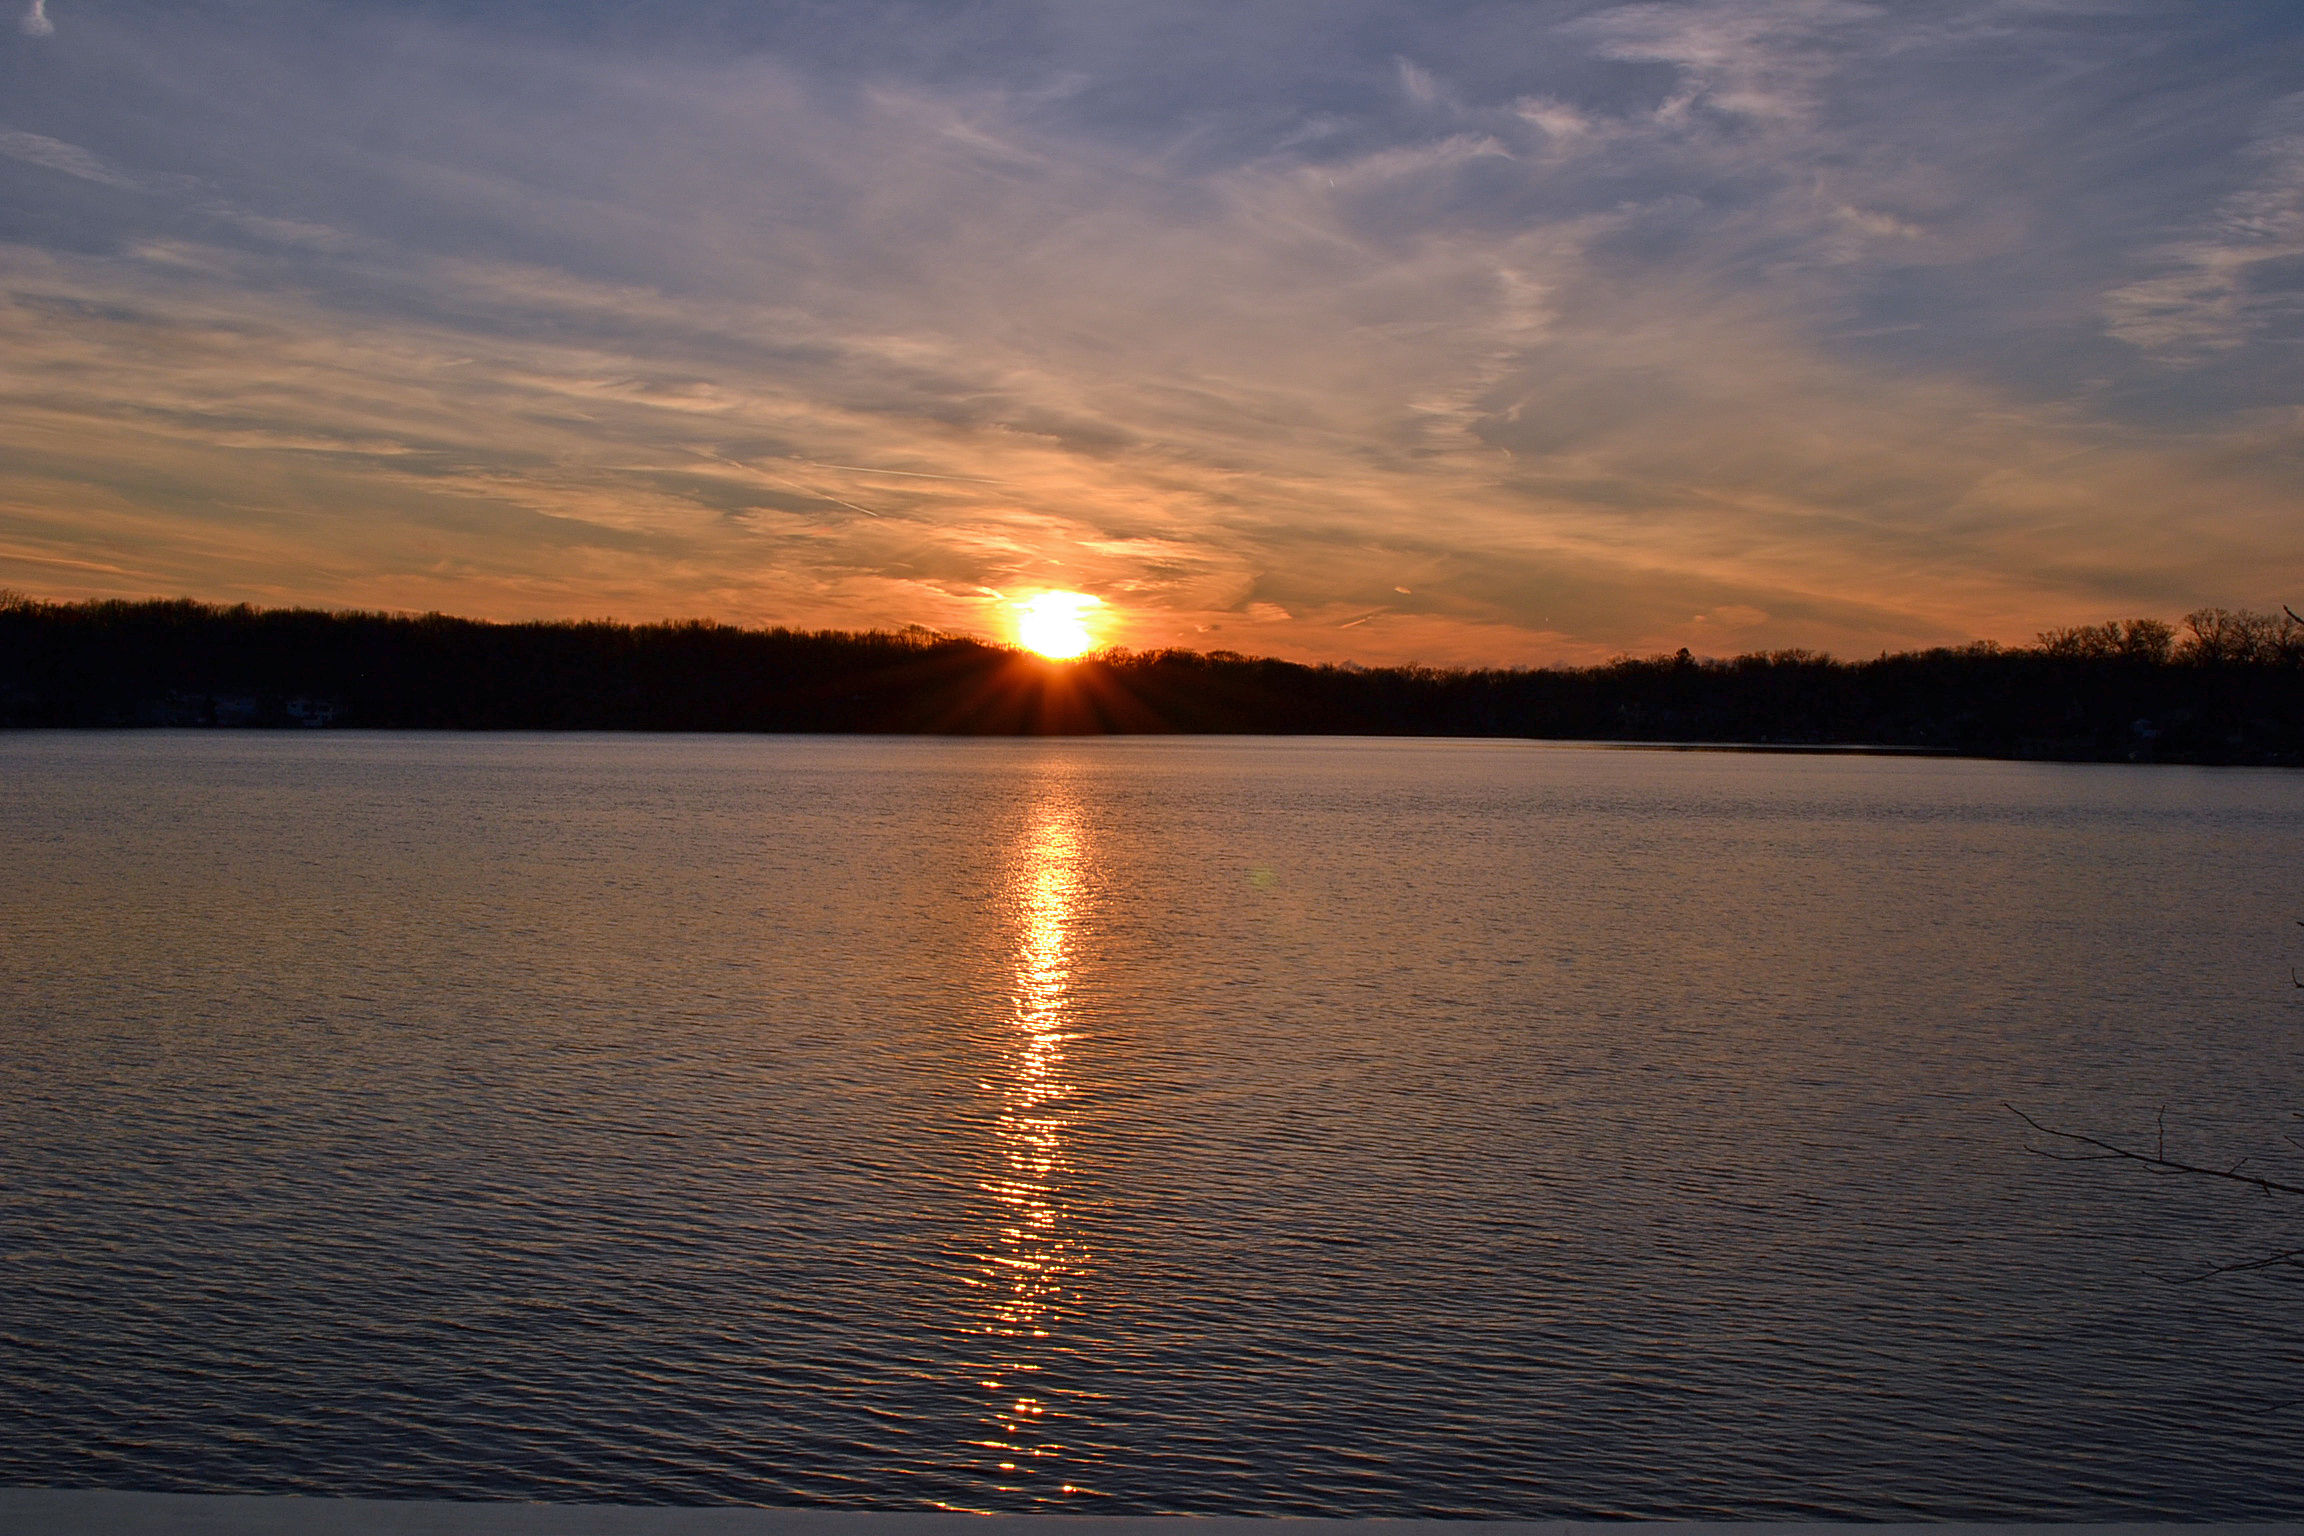 Sunset over Flint Lake in Valparaiso Indiana 46383 taken from the Woodmere neighborhood sun deck